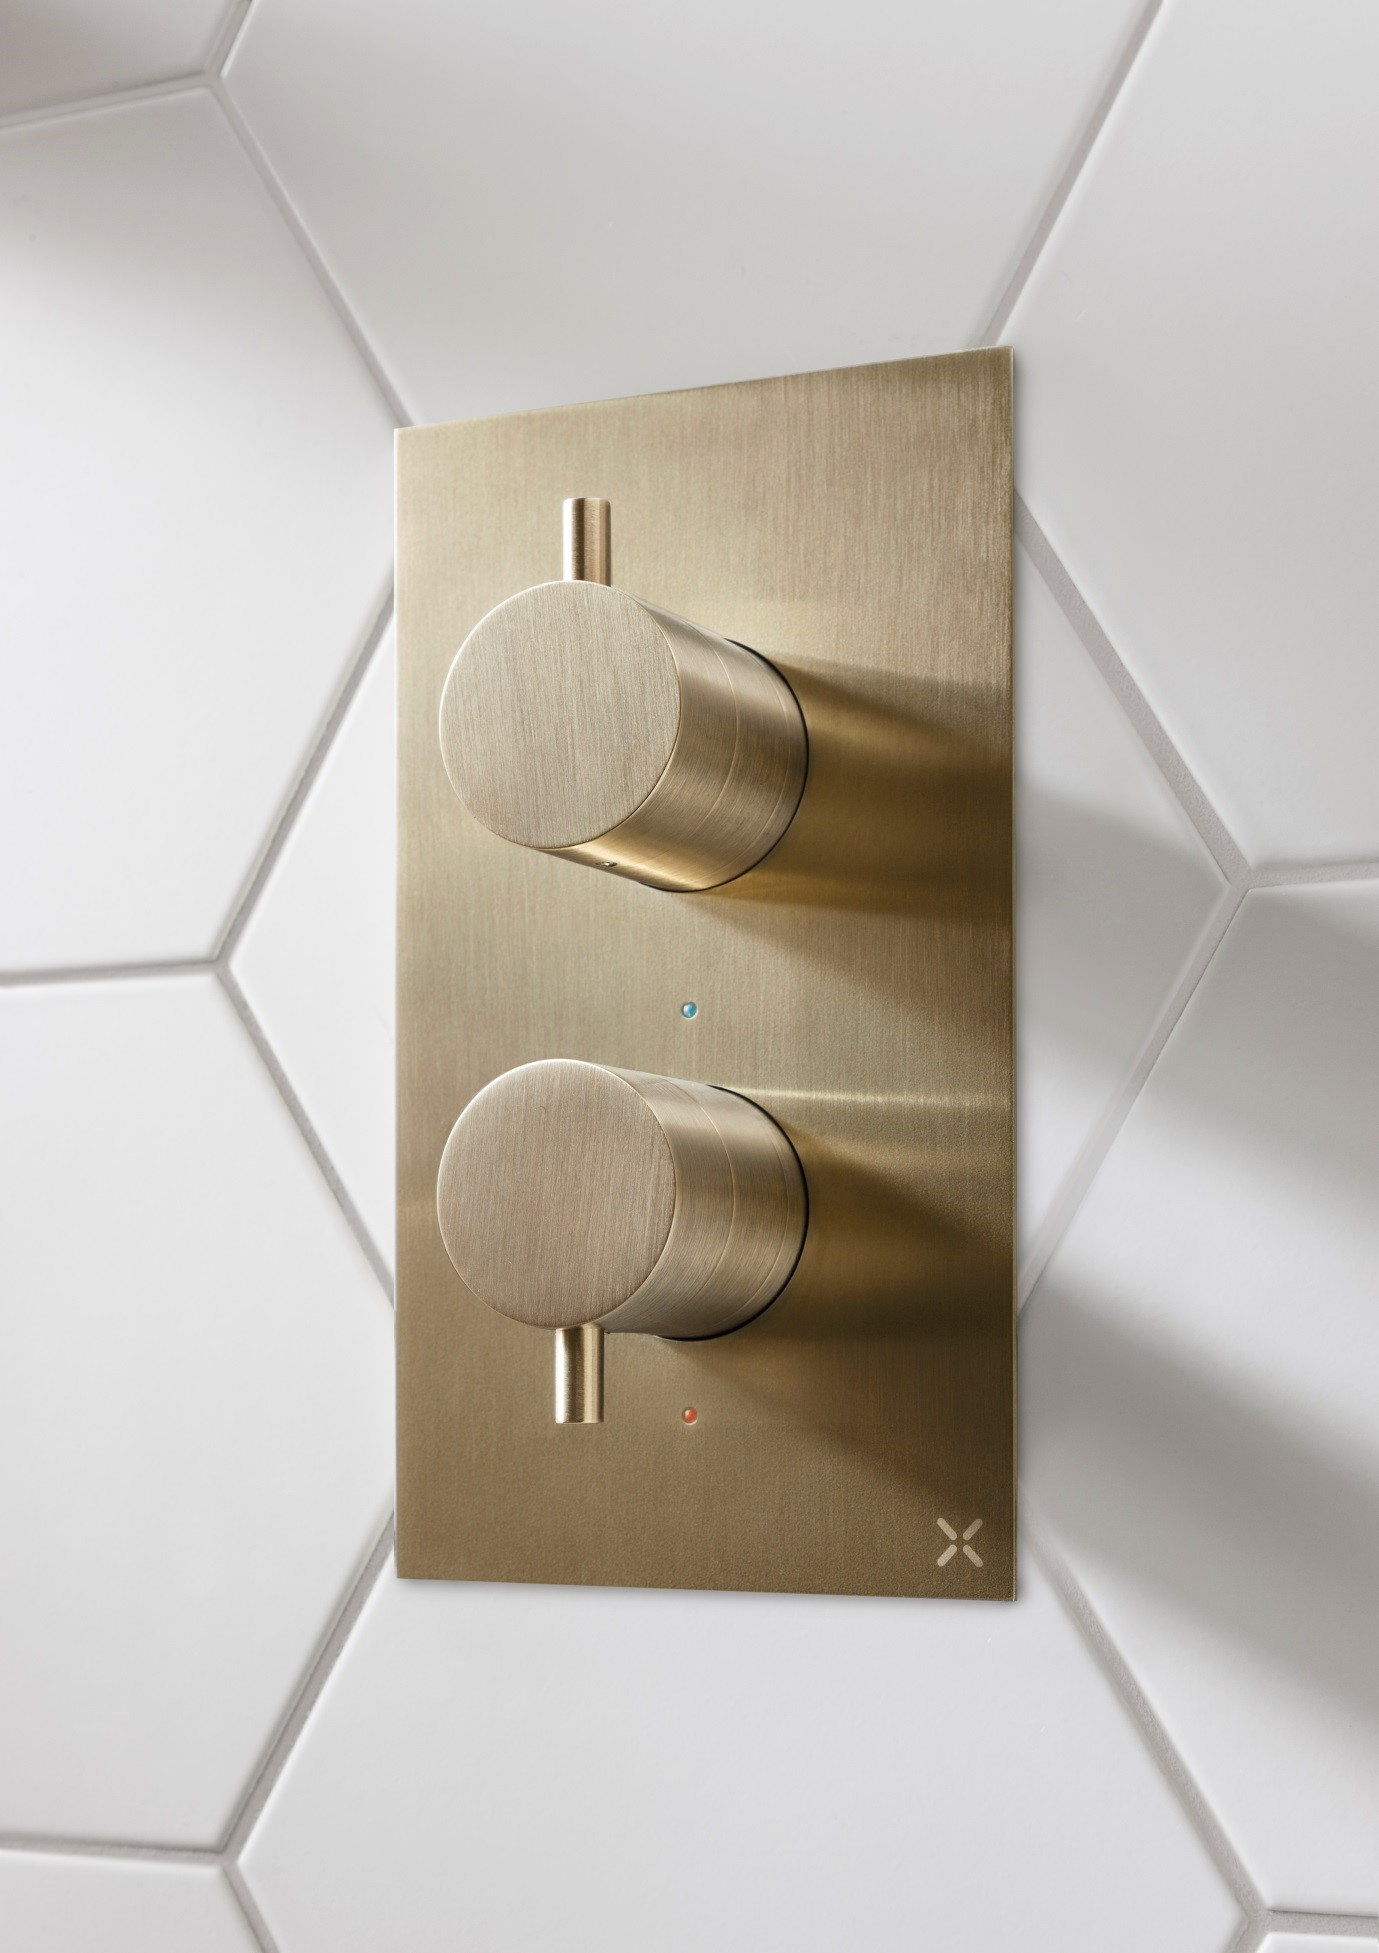 Crosswater MPRO brushed gold shower valve available from BATHLINE Bathrooms.